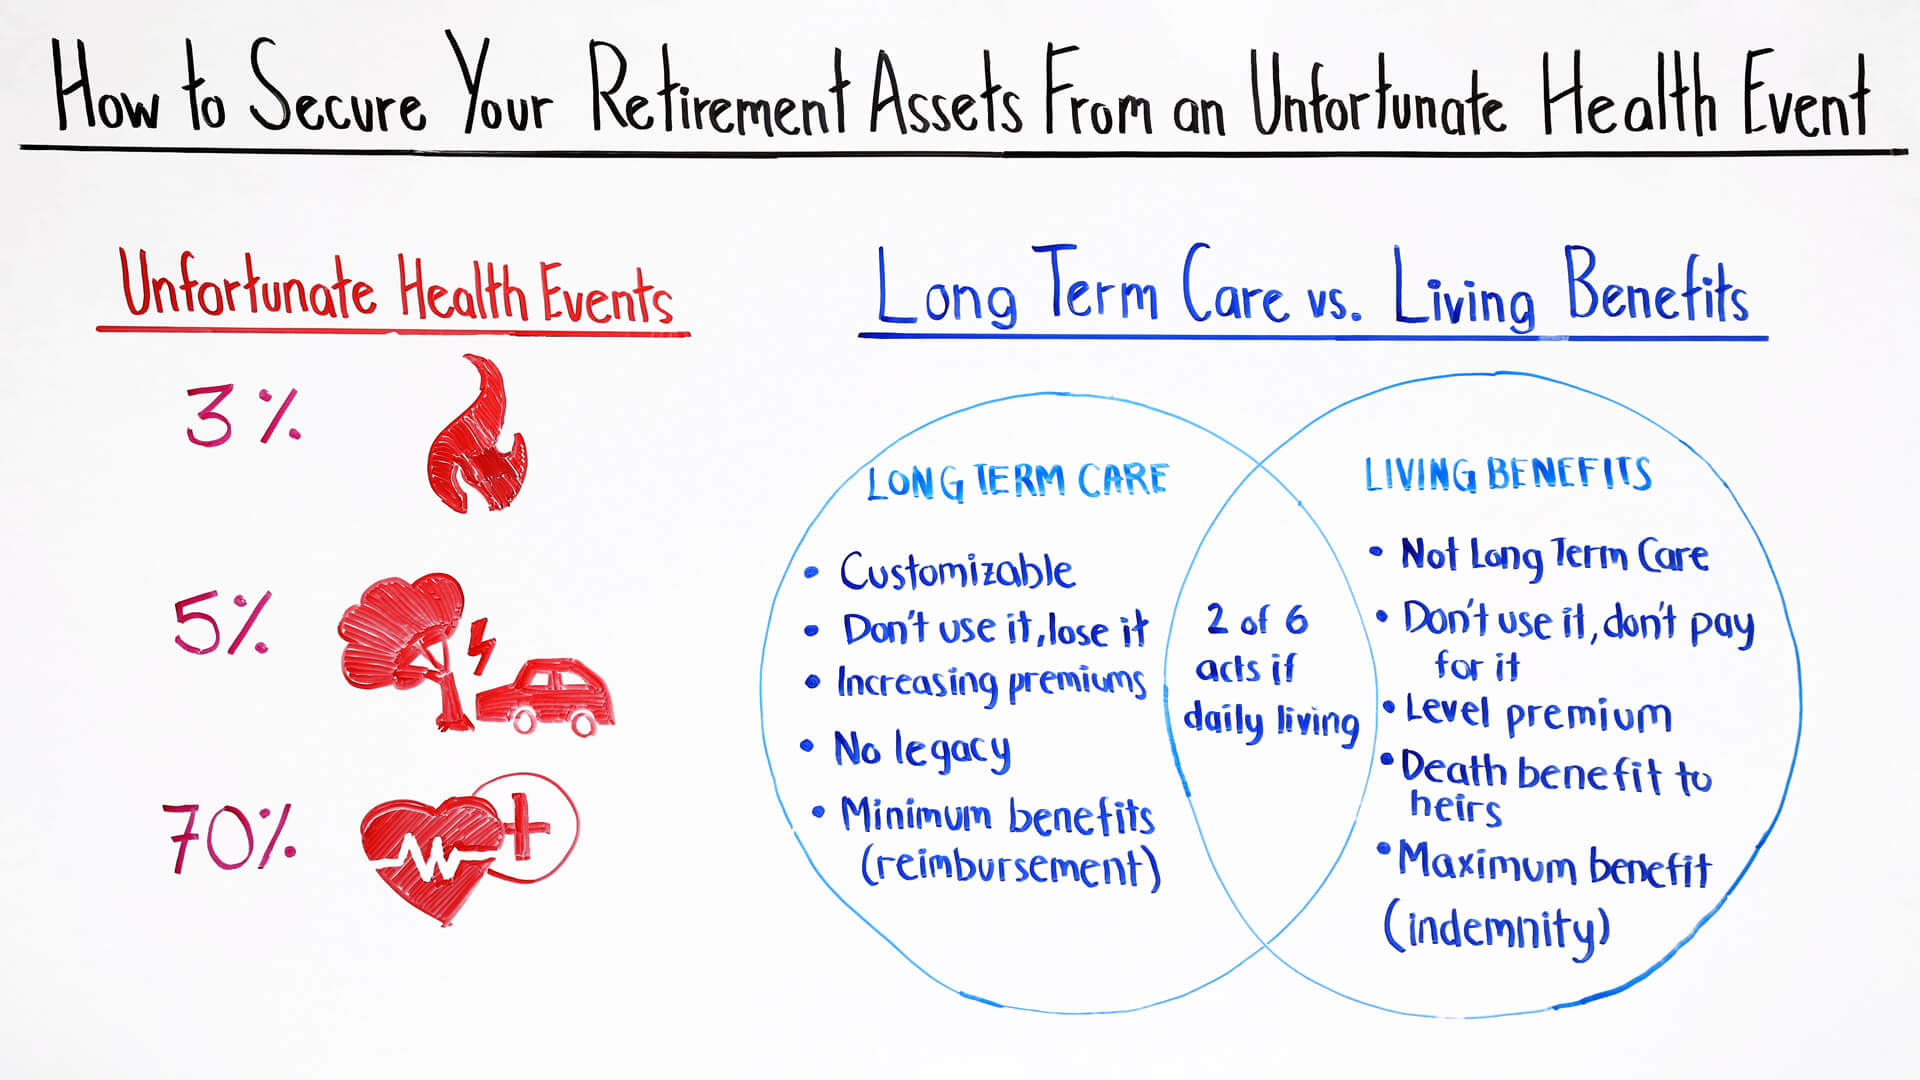 how to secure your retirement assets from an unfortunate health event